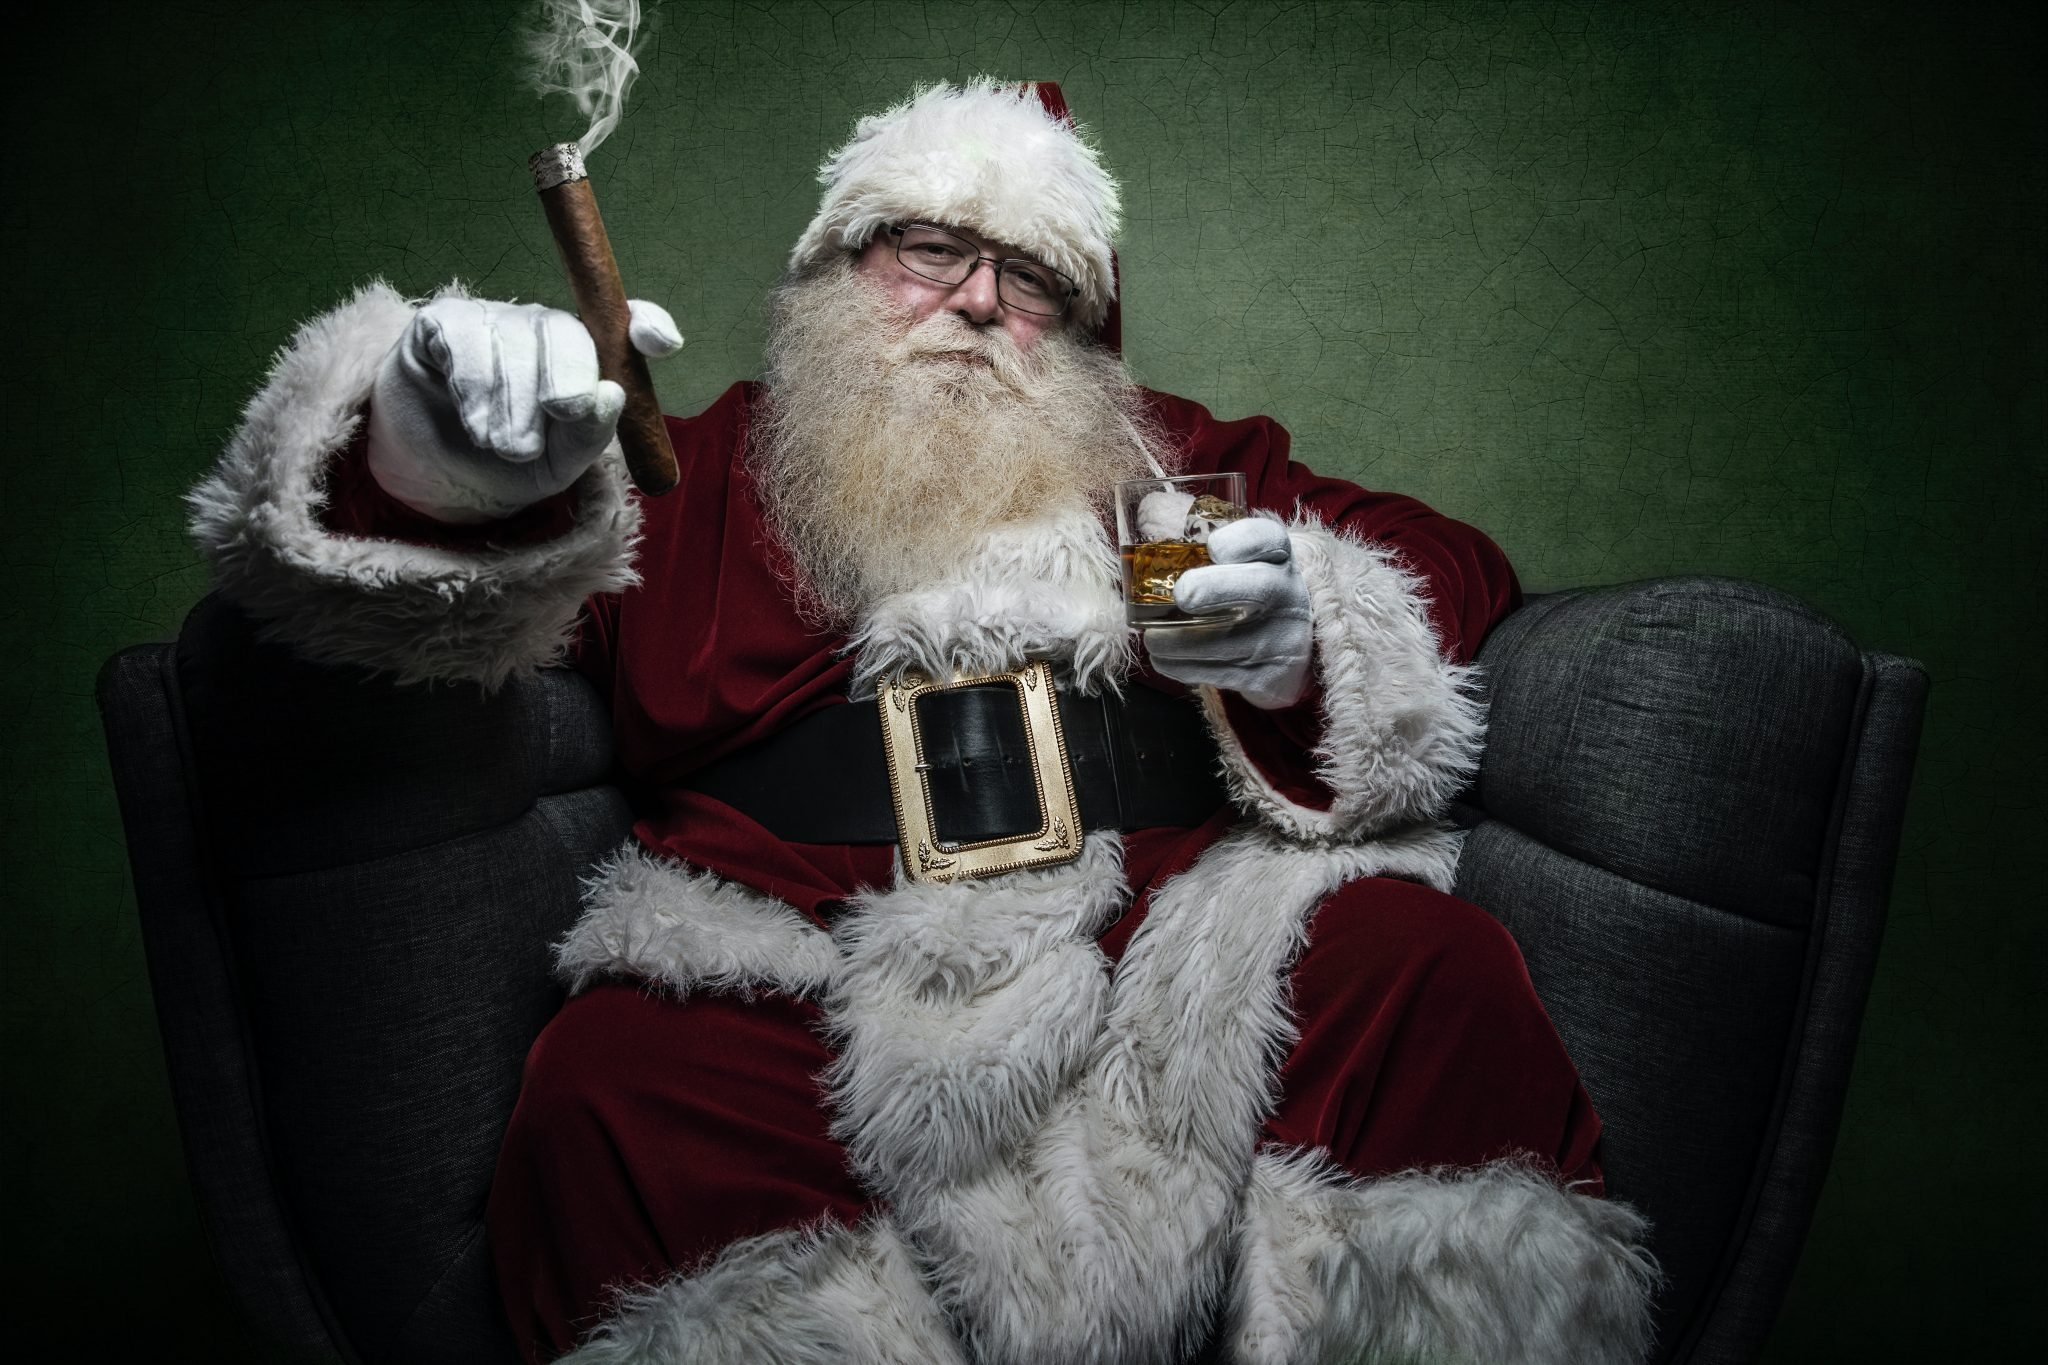 pencil-and-coffee-santa-claus-with-cigar-and-whiskey